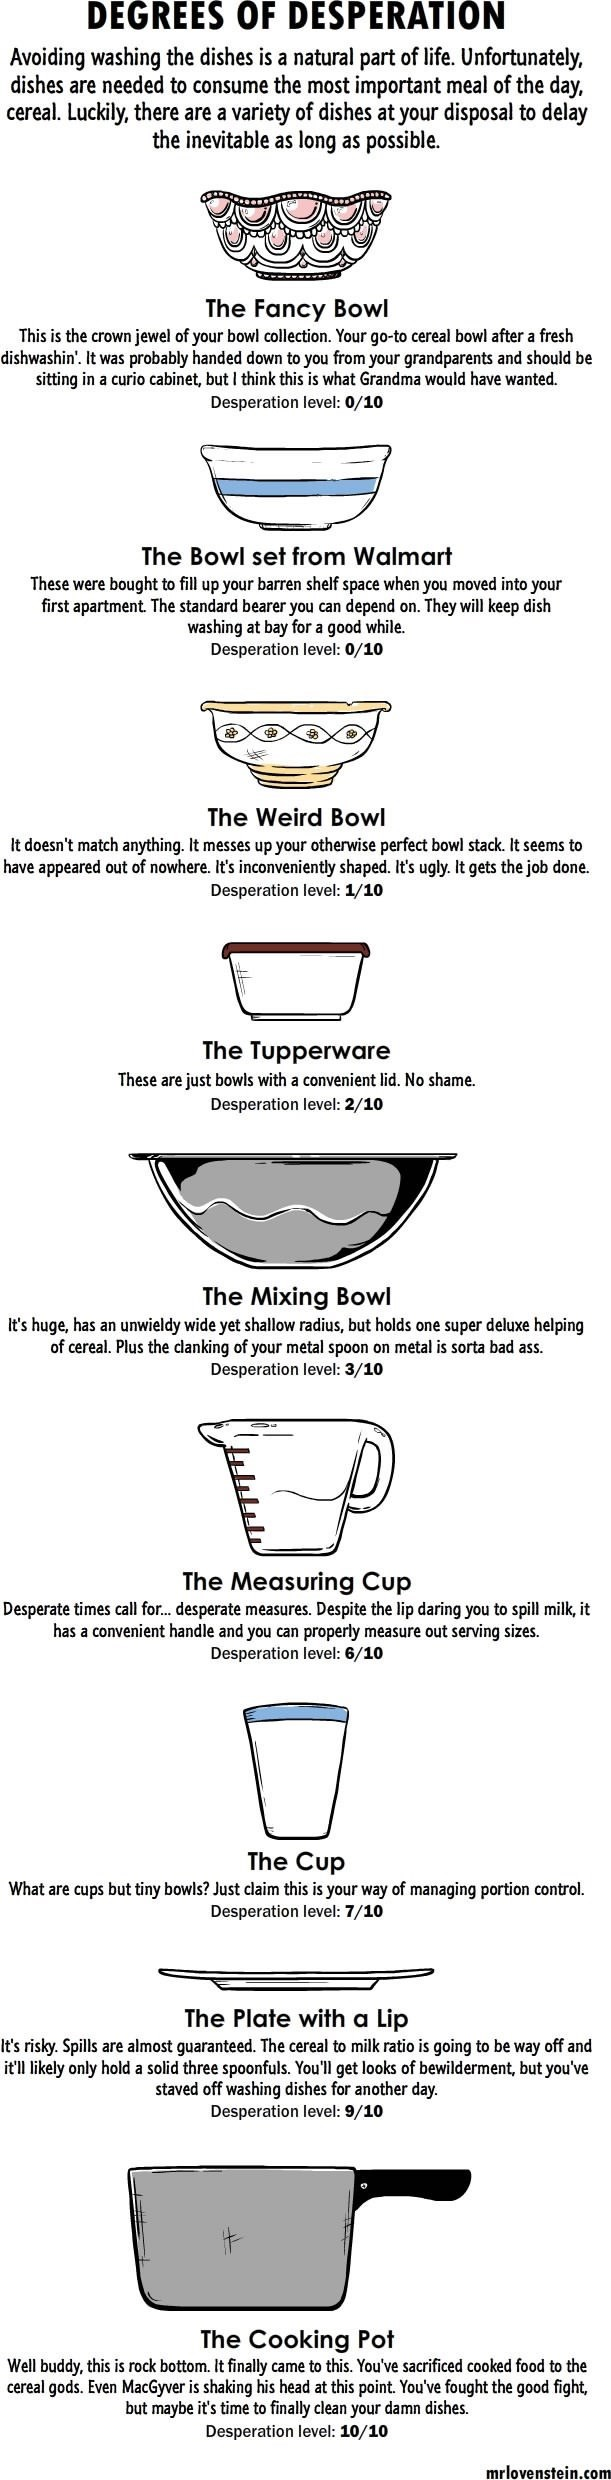 funny-web-comics-what-your-dishes-say-about-your-desperation